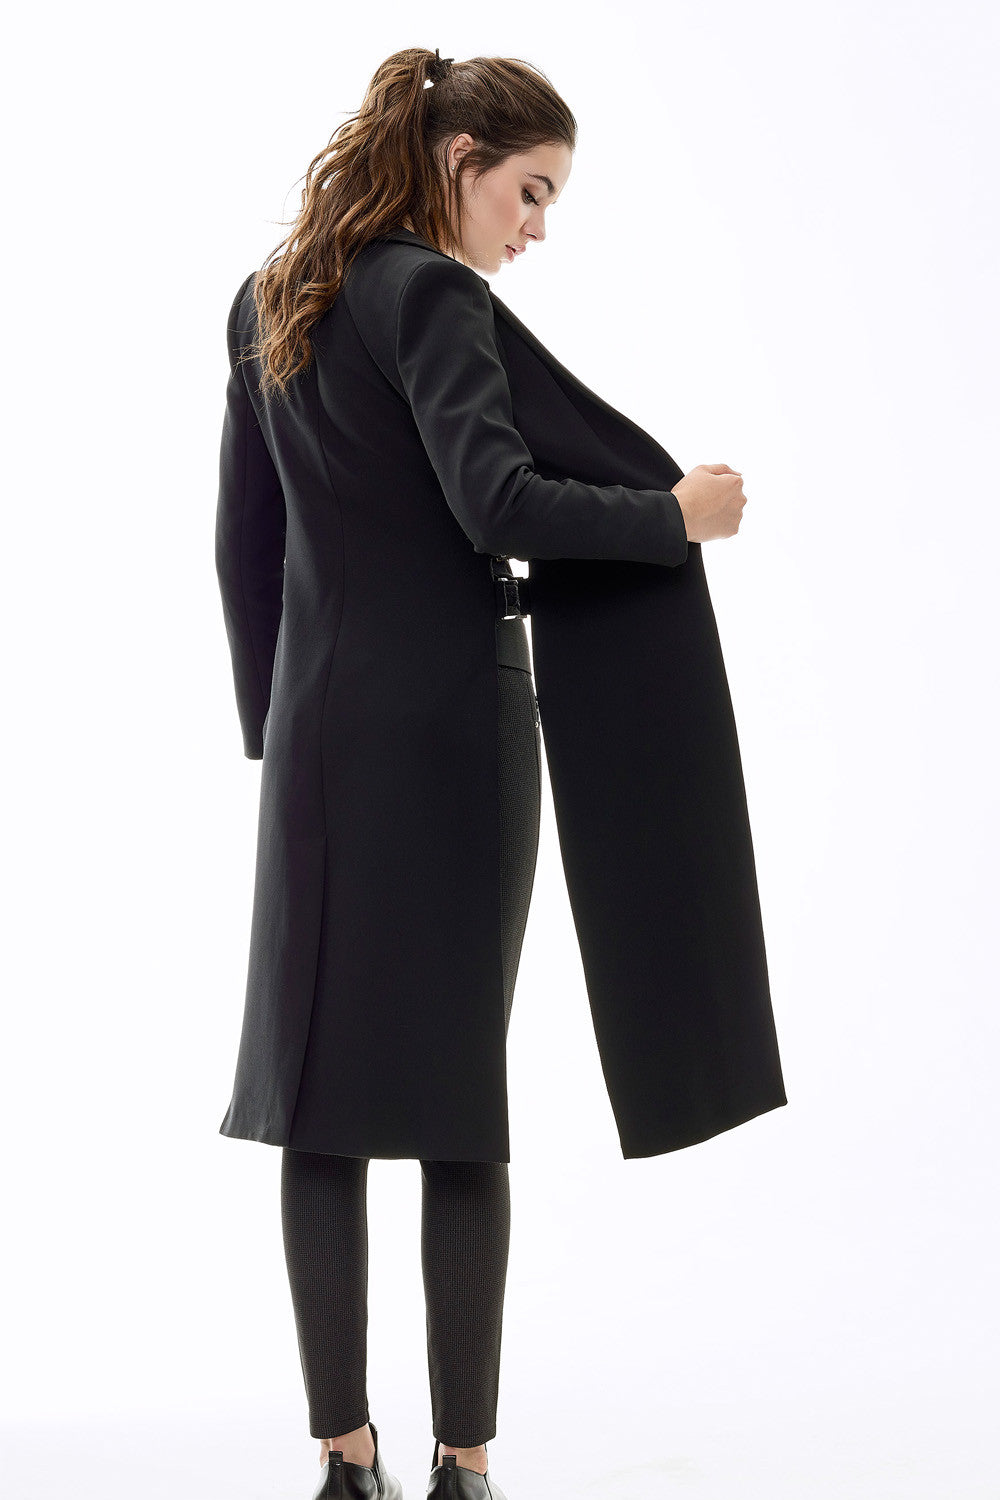 Buckle Black Coat